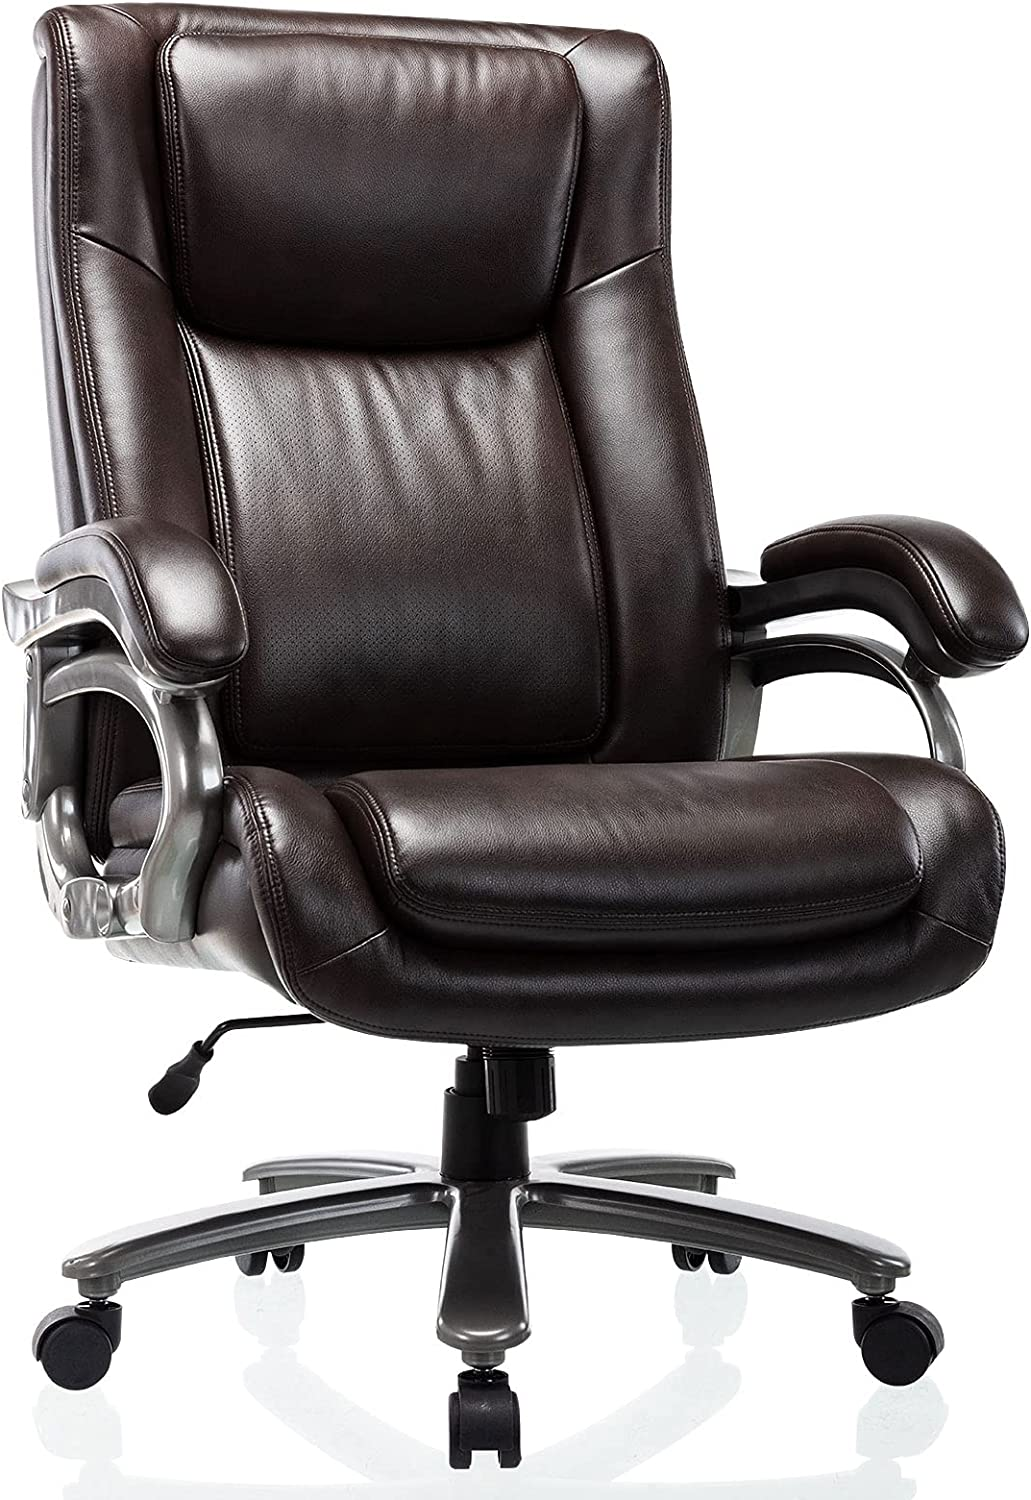 400lb Big & Tall Office Chair - High Back Bonded Leather Executive Managerial Chair, Heavy Duty Metal Base Adjustable Height Thick Padded Seat Ergonomic Design Large Computer Swivel Task Desk Chair: Kitchen & Dining